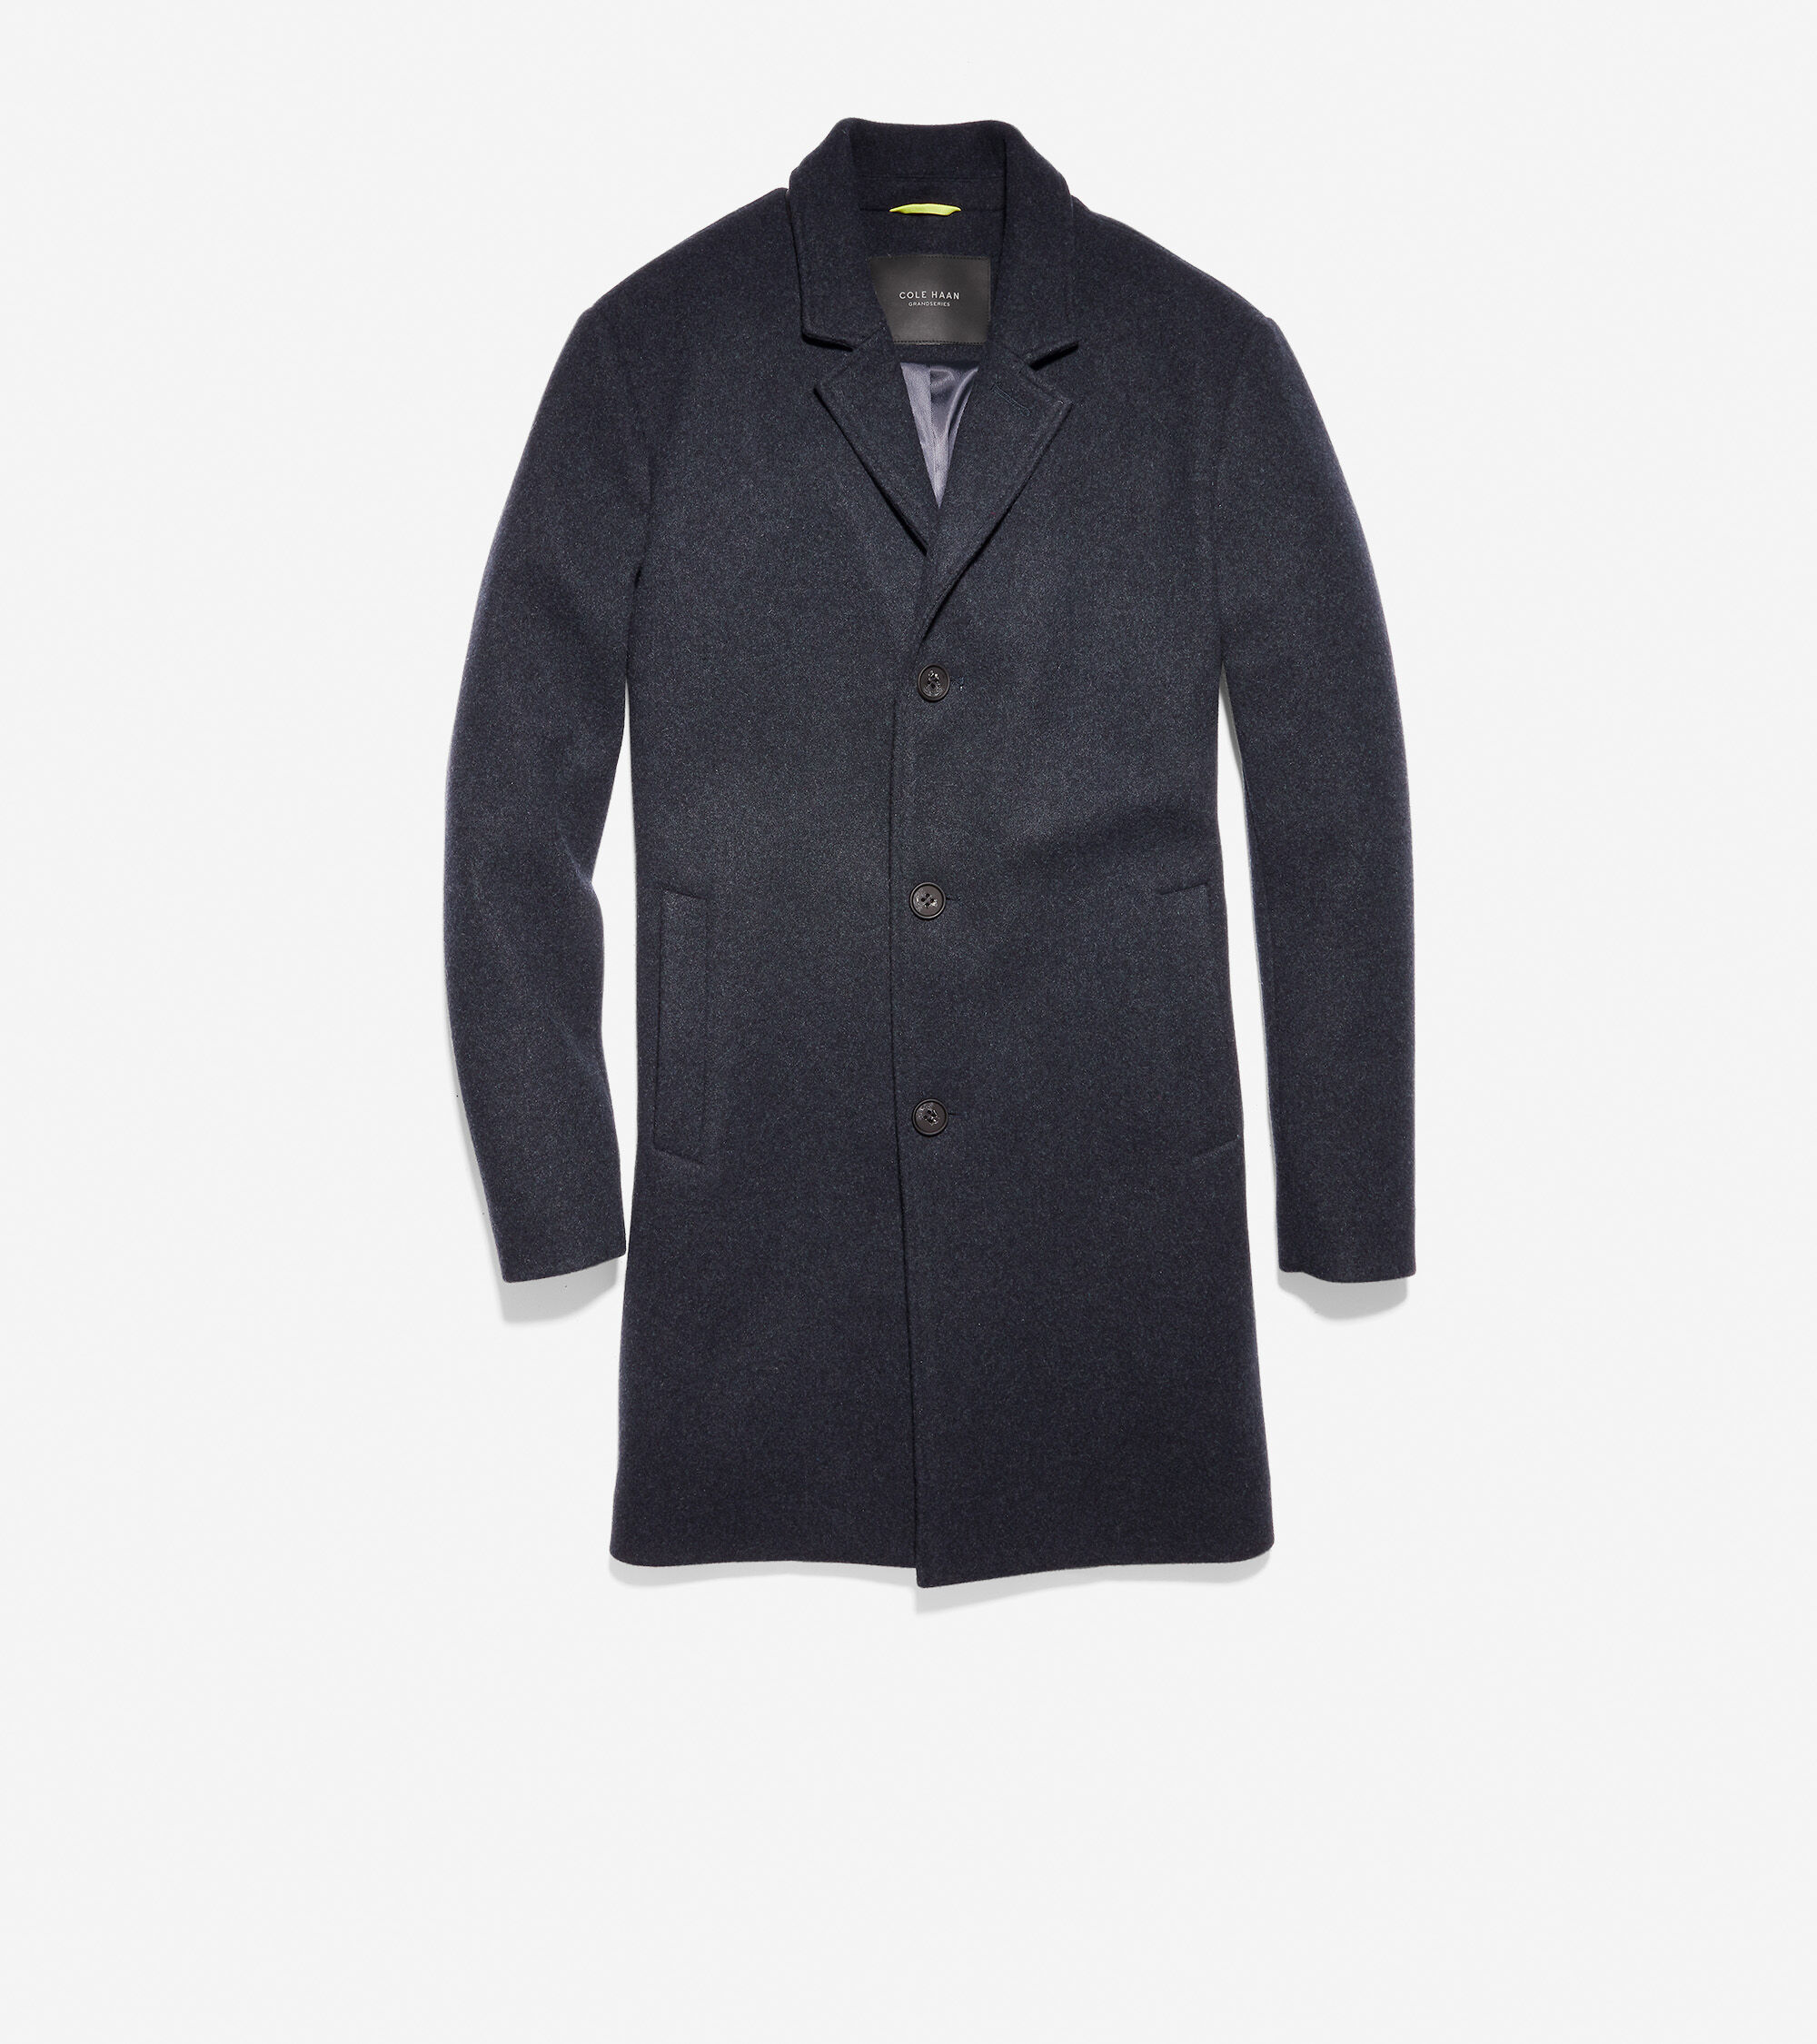 9b8d29d6768f Men s Grand.OS Stretch Wool Jacket in Navy